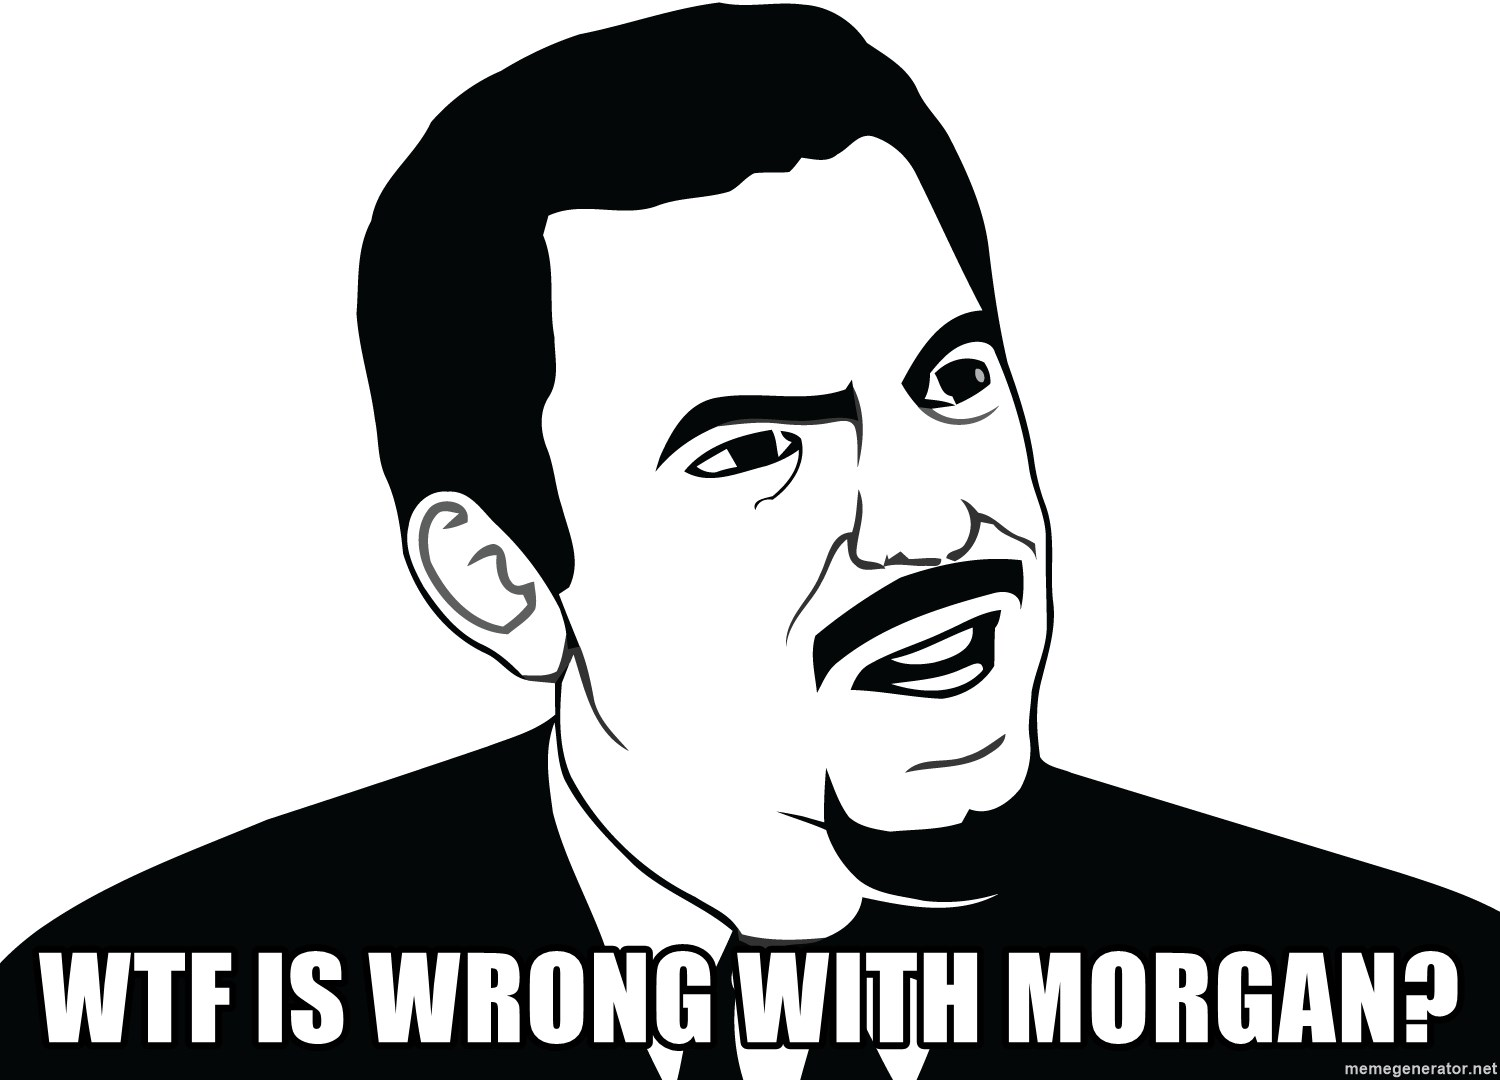 Are you serious face  - WTF IS WRONG WITH Morgan?